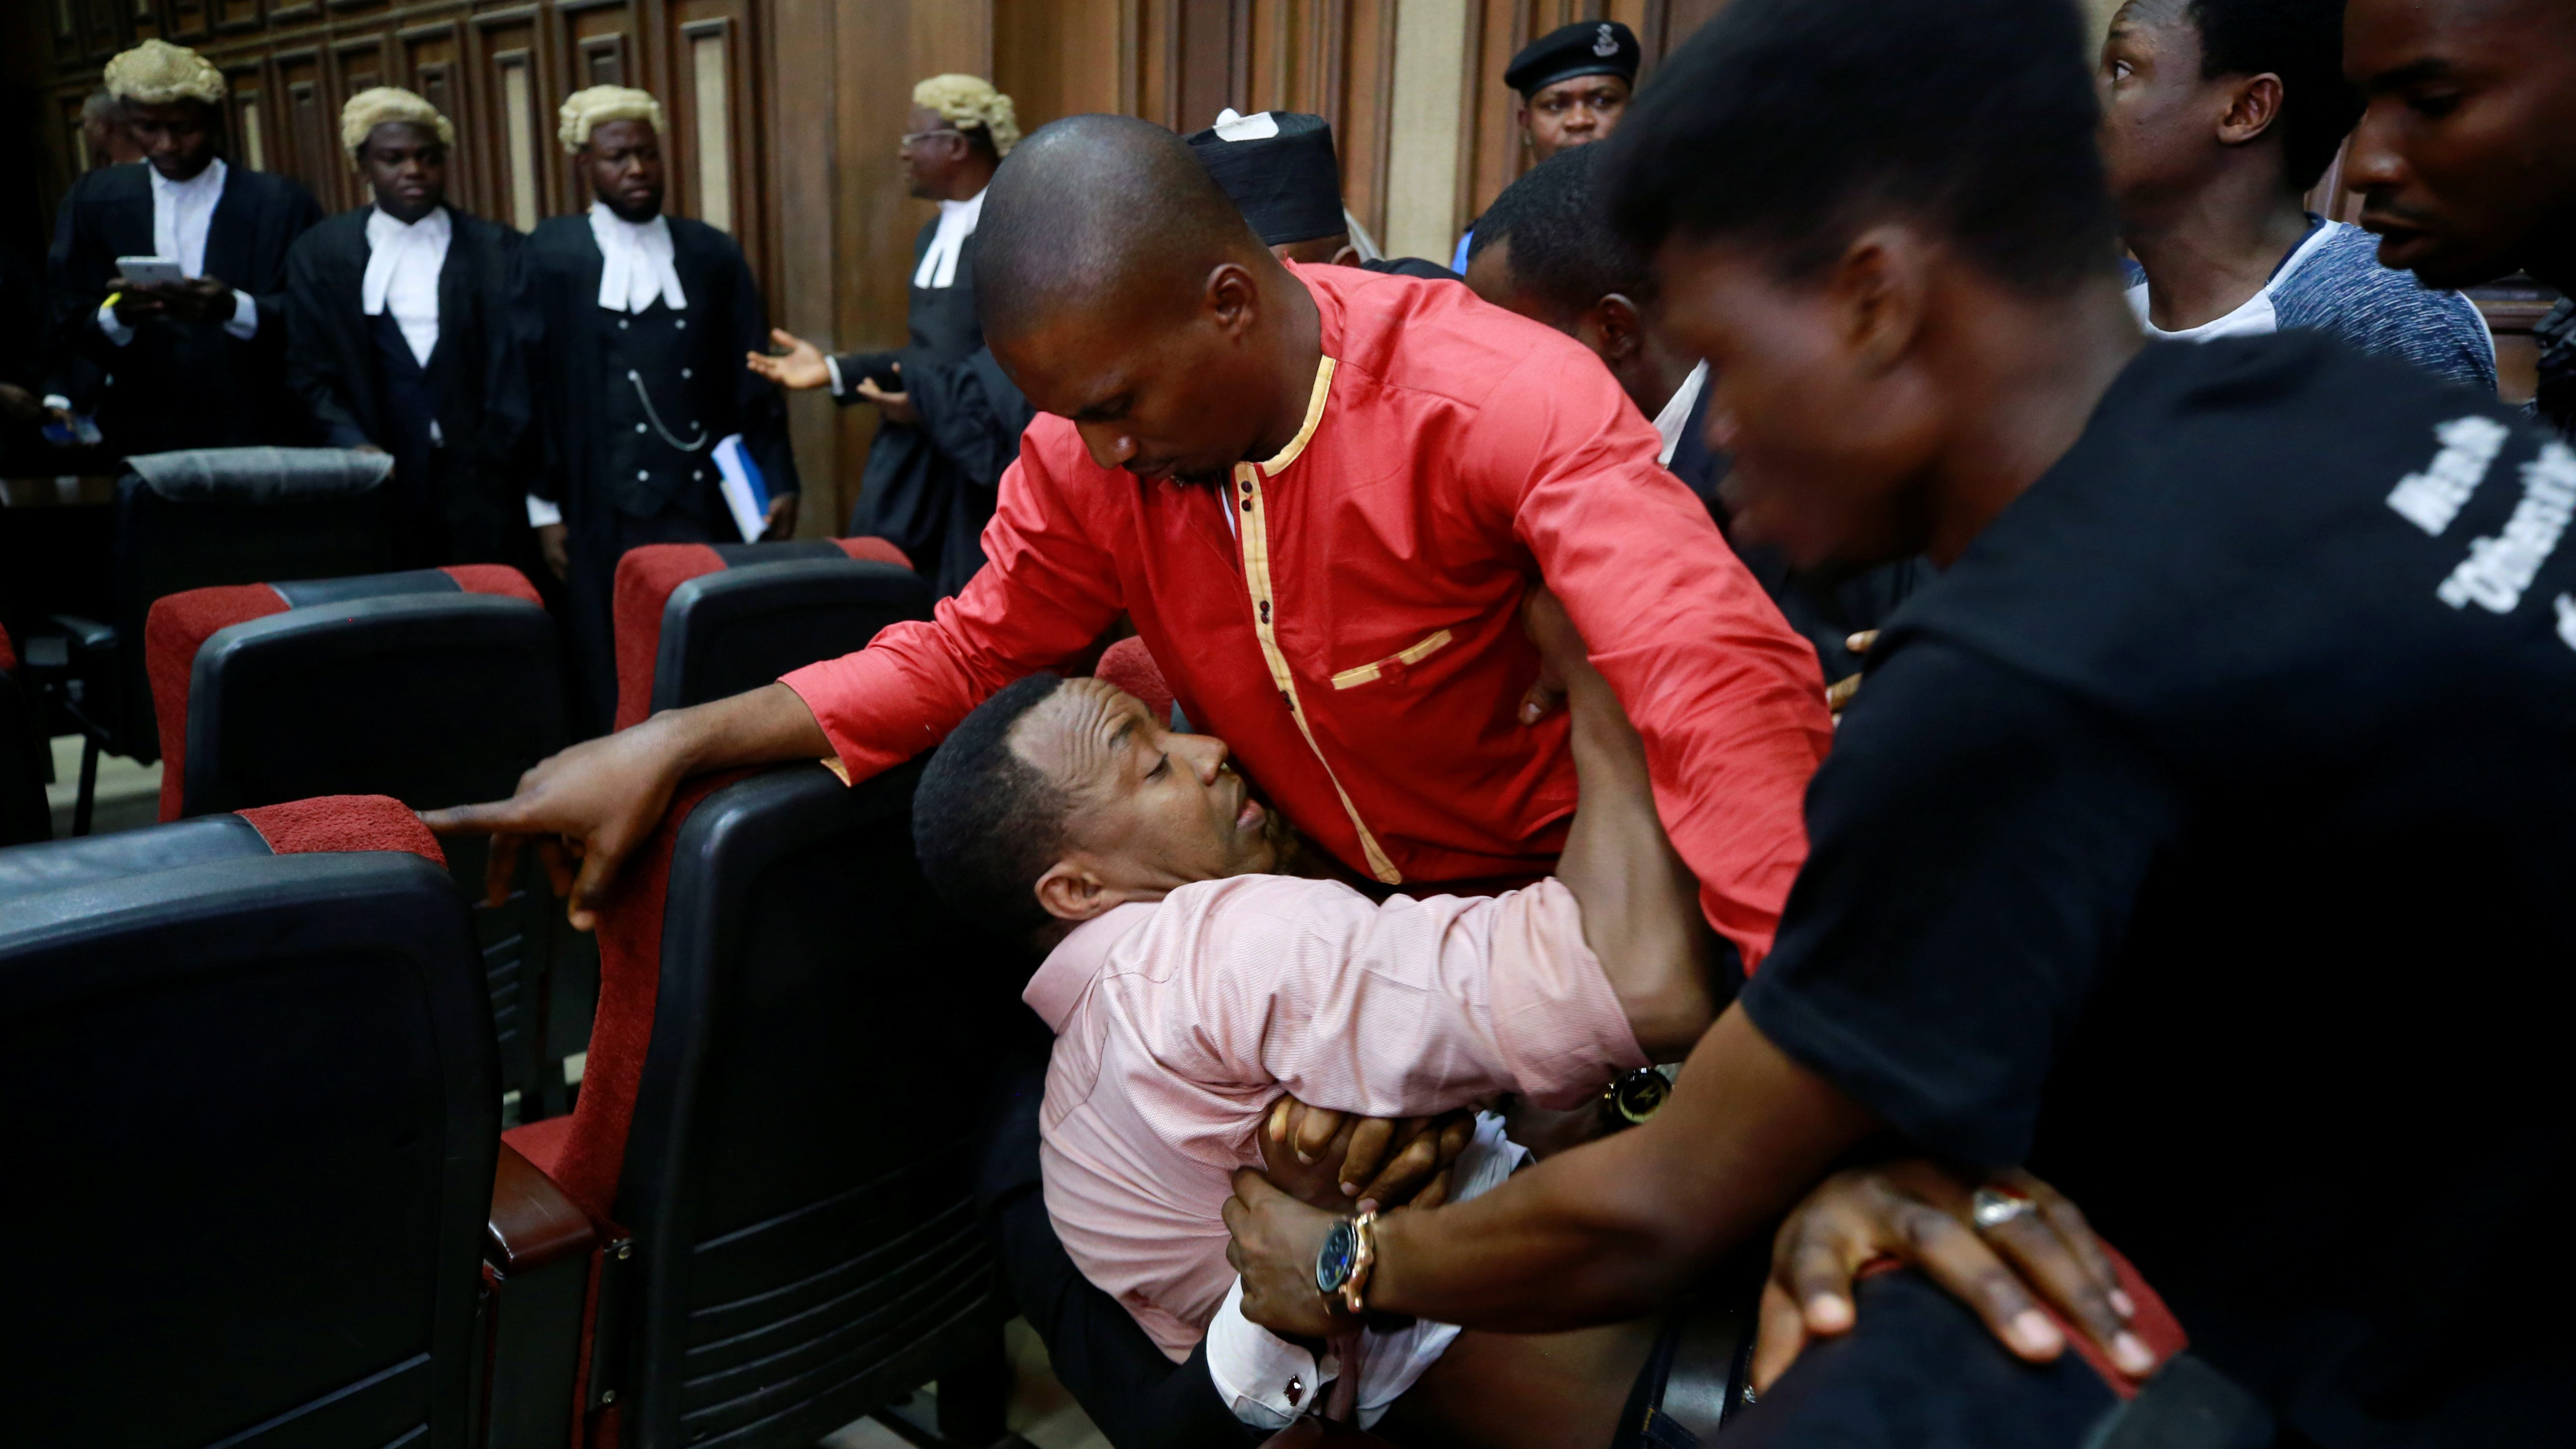 The controversial rearrest of a prominent activist and journalist is testing press freedom in Nigeria